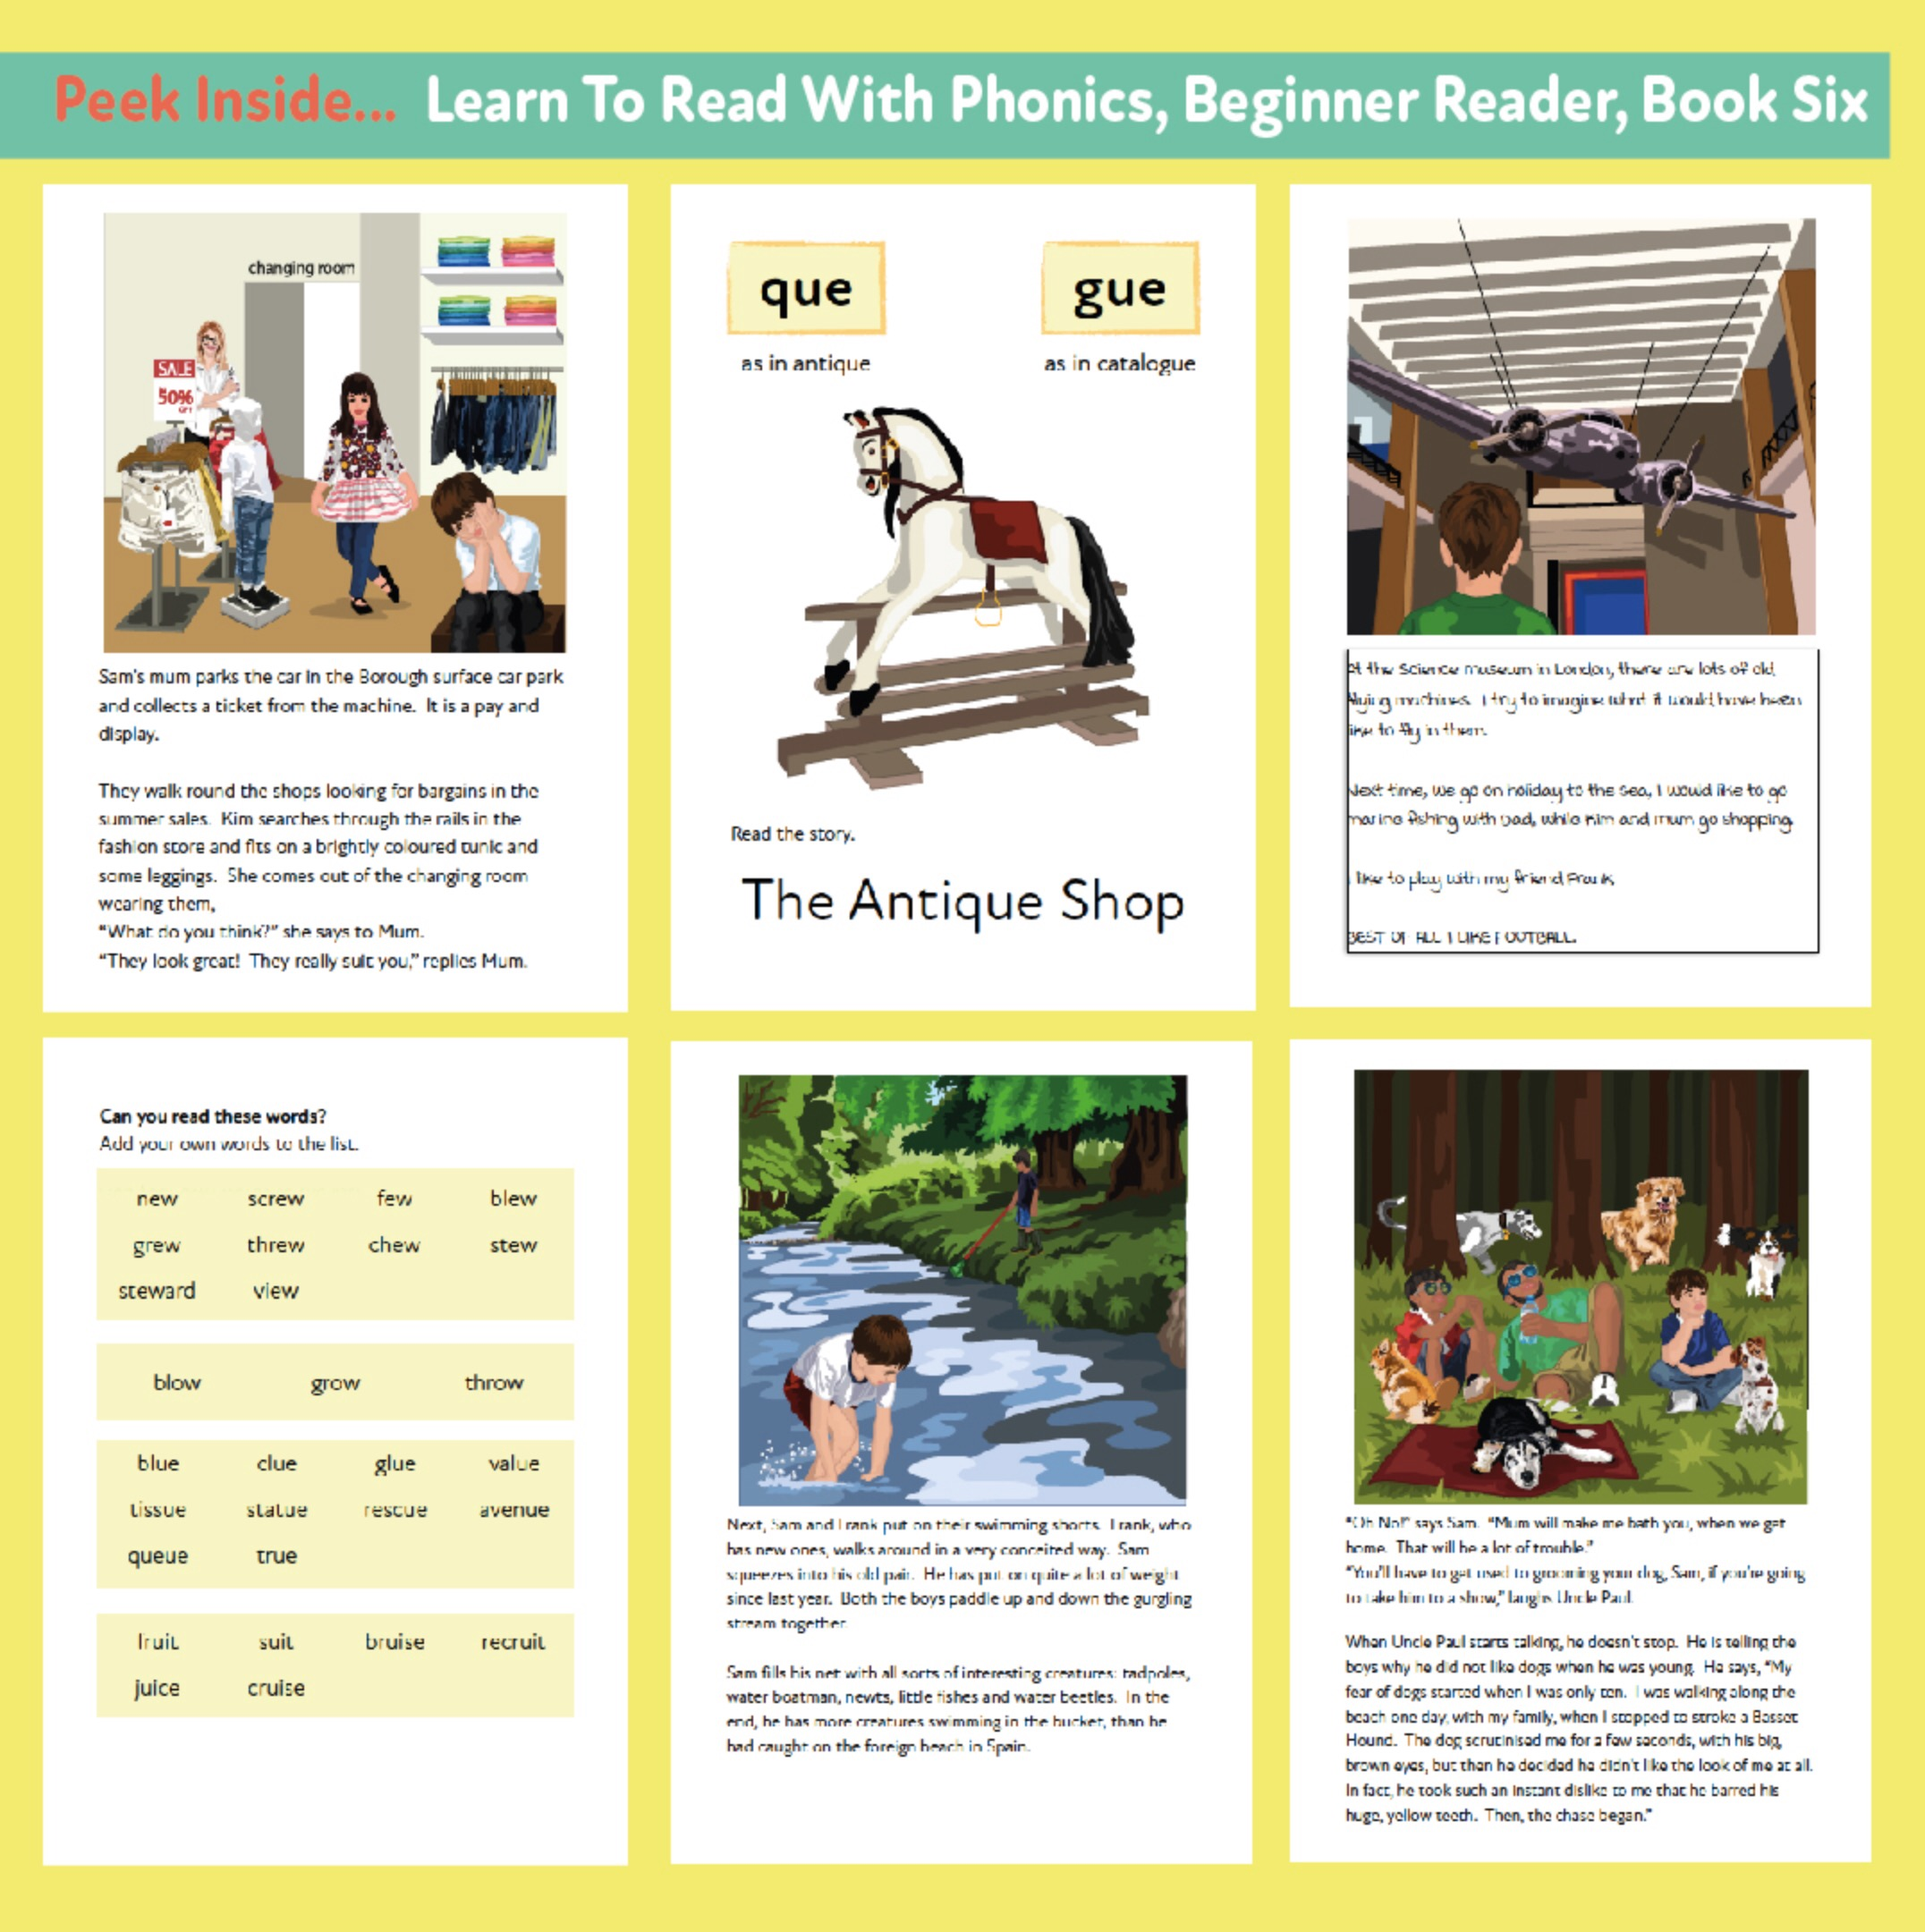 Learn to Read Rapidly with Phonics: Beginner Reader Book 6: Print Book